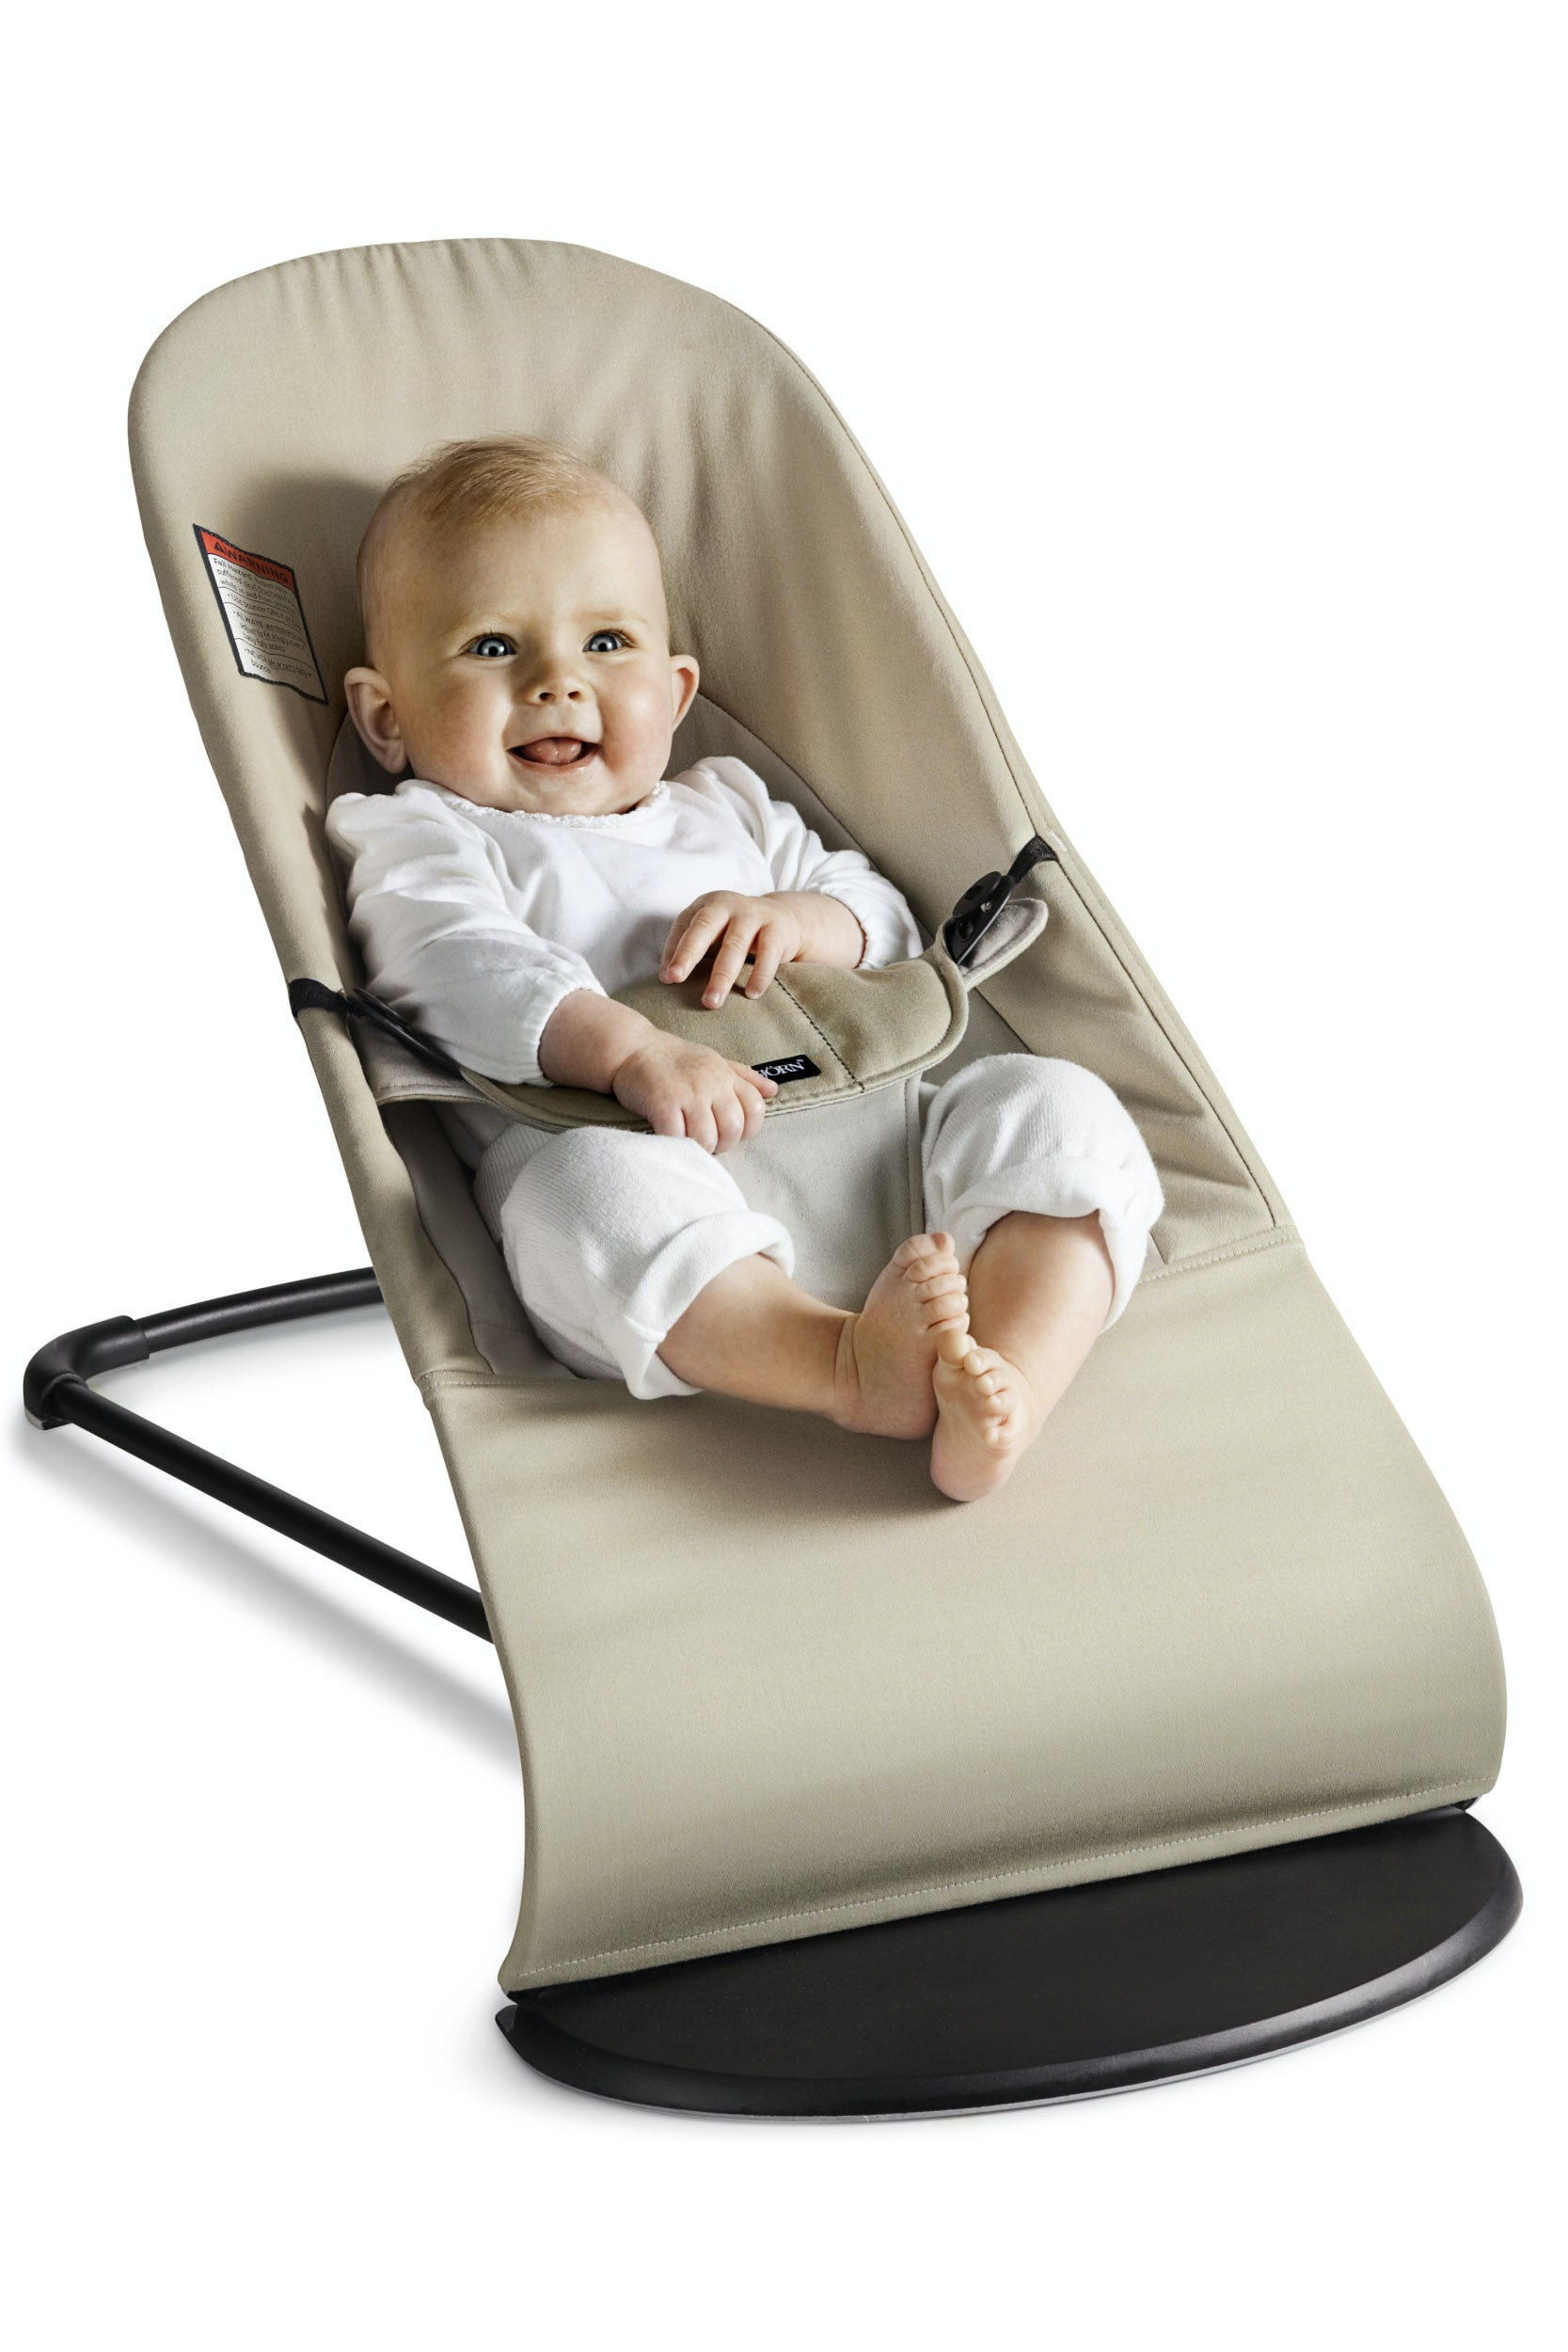 Infant Rocker Carrier Balance Soft An Ergonomic Baby Bouncer BabybjÖrn